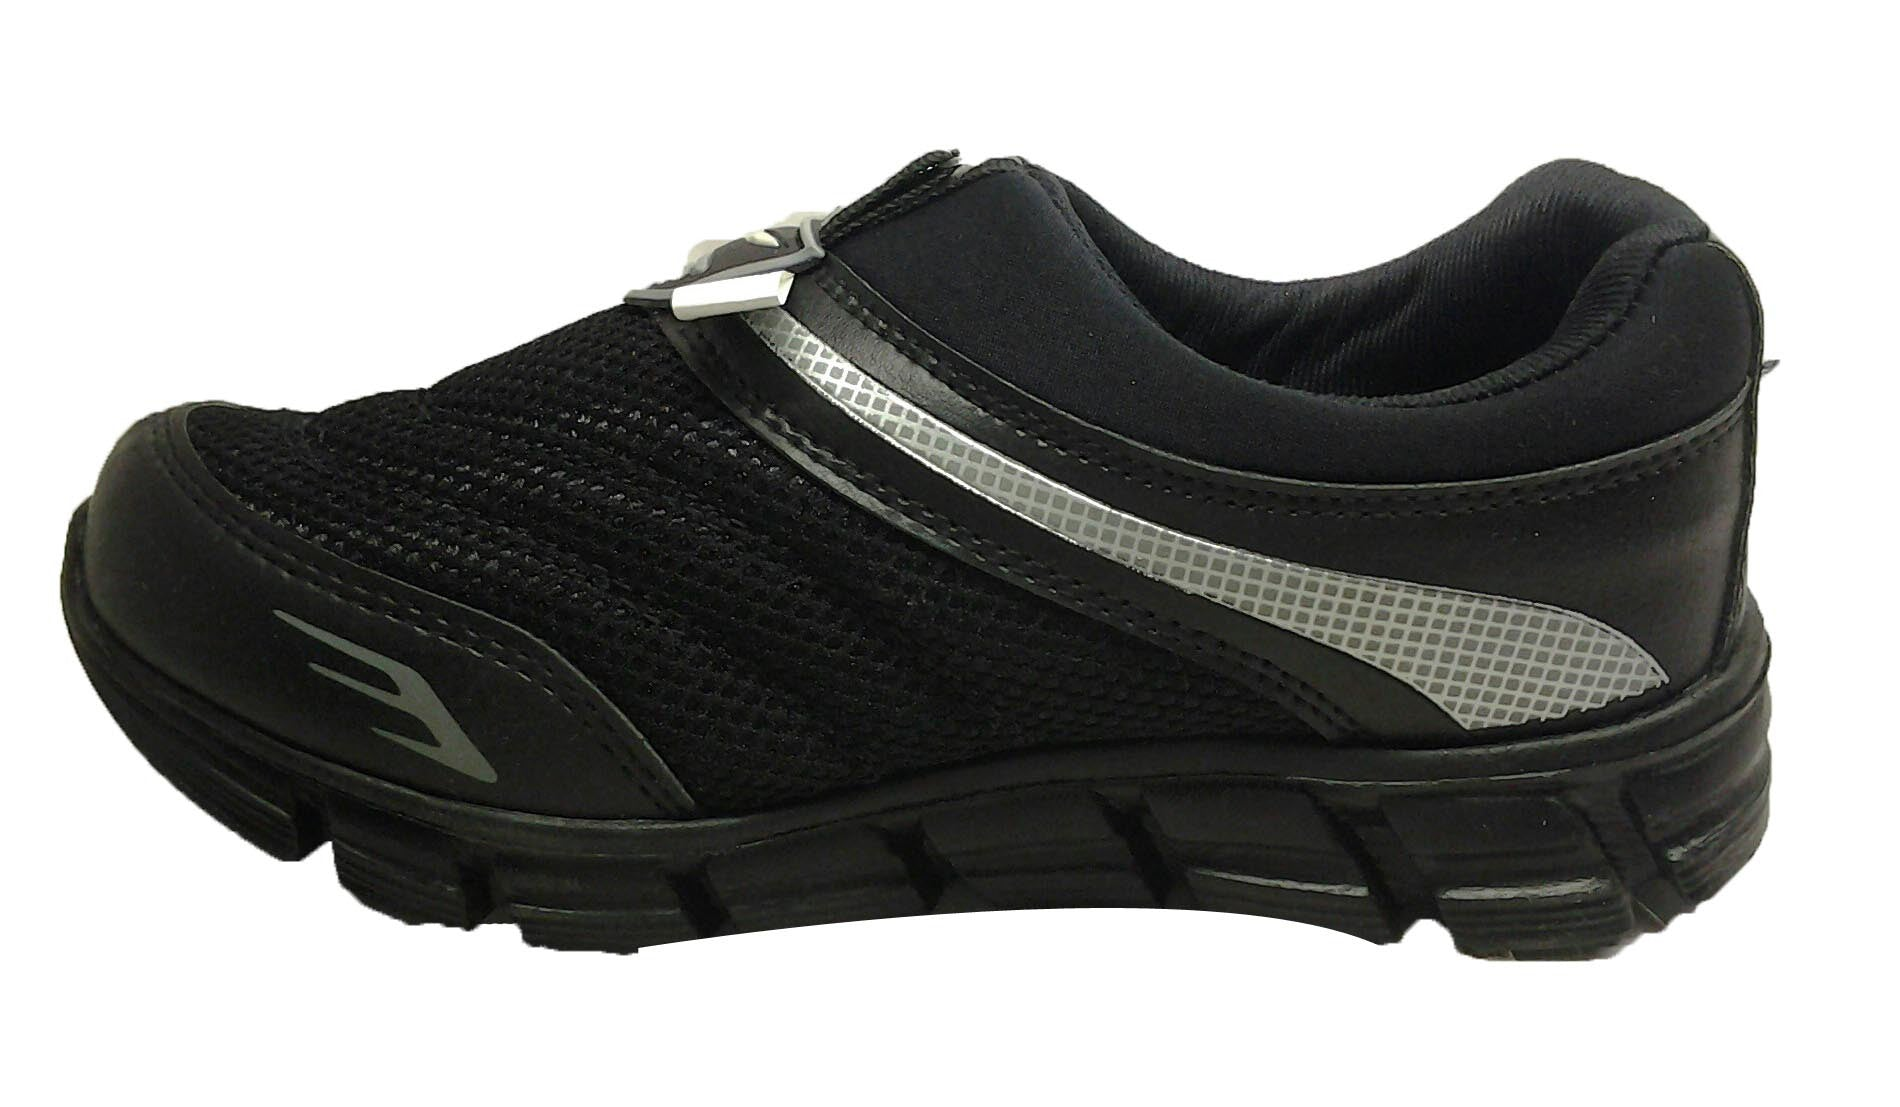 Goyalsons Sport Shoes Wsl 402